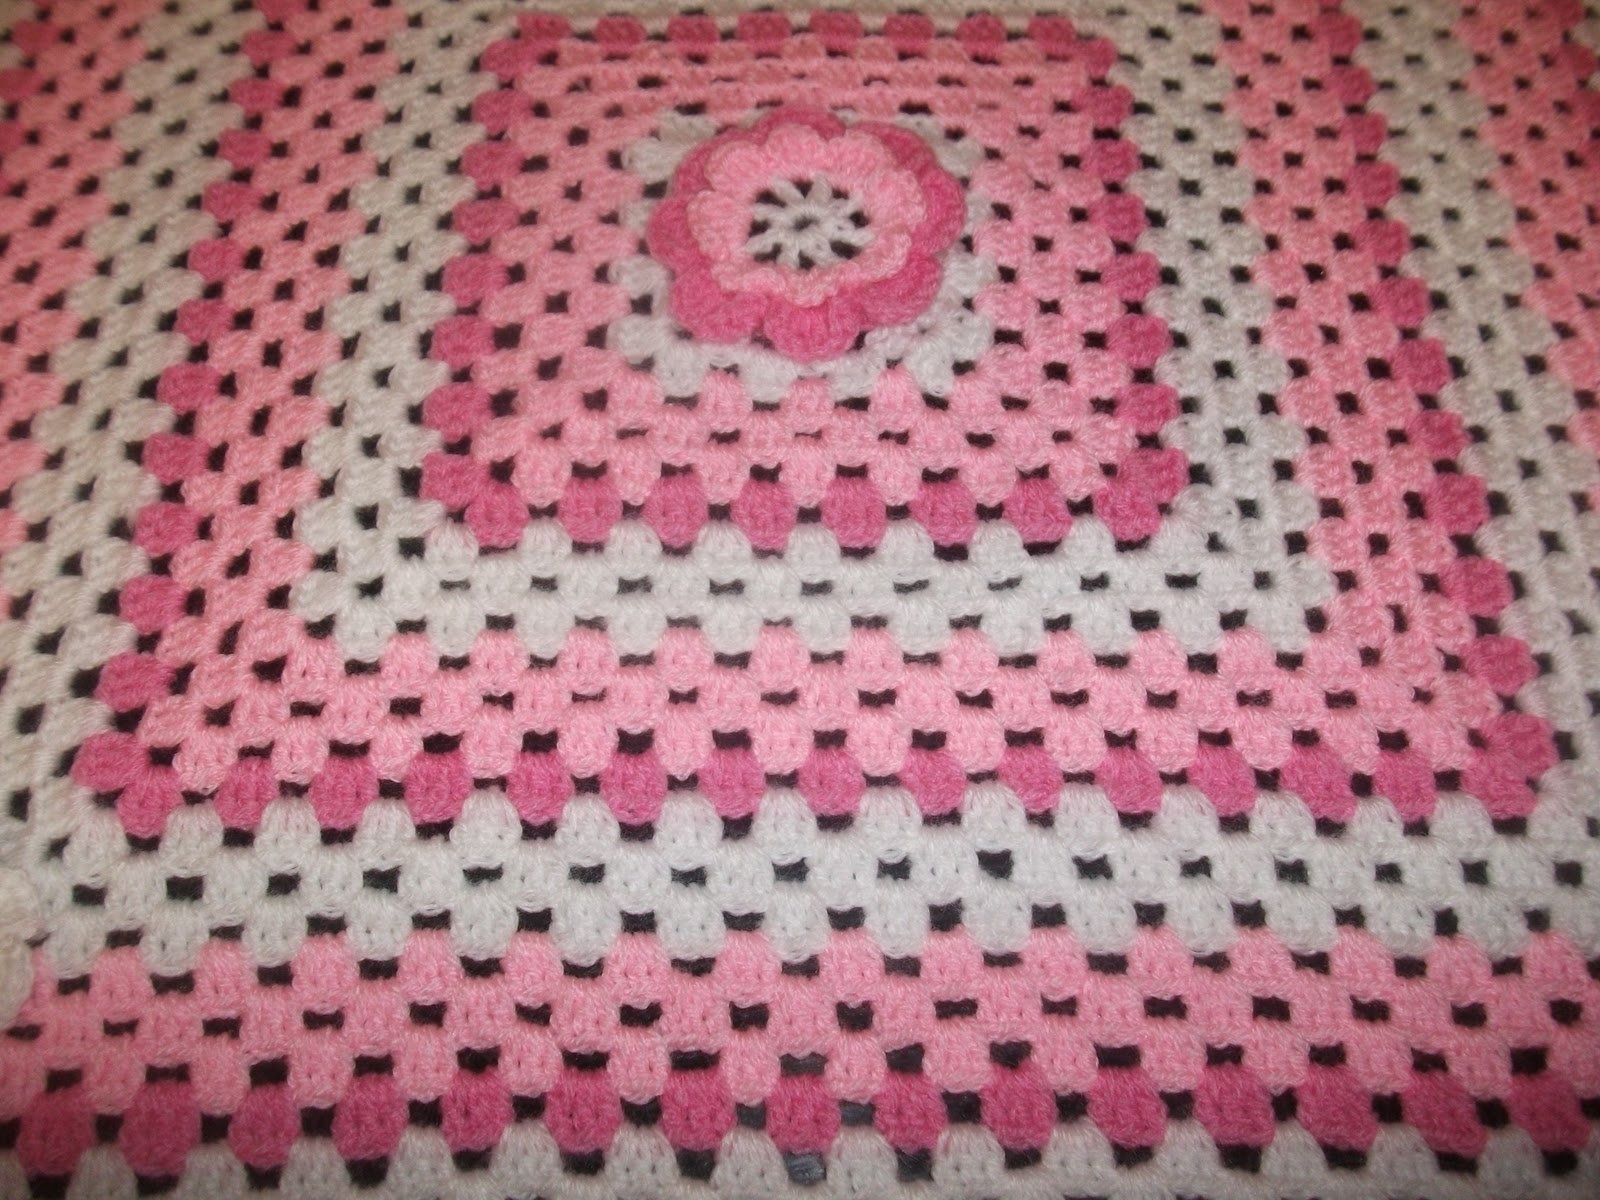 Crocheting Easy Baby Blanket : Helens Colourful Crochet Blankets: New baby girl pink crochet blanket